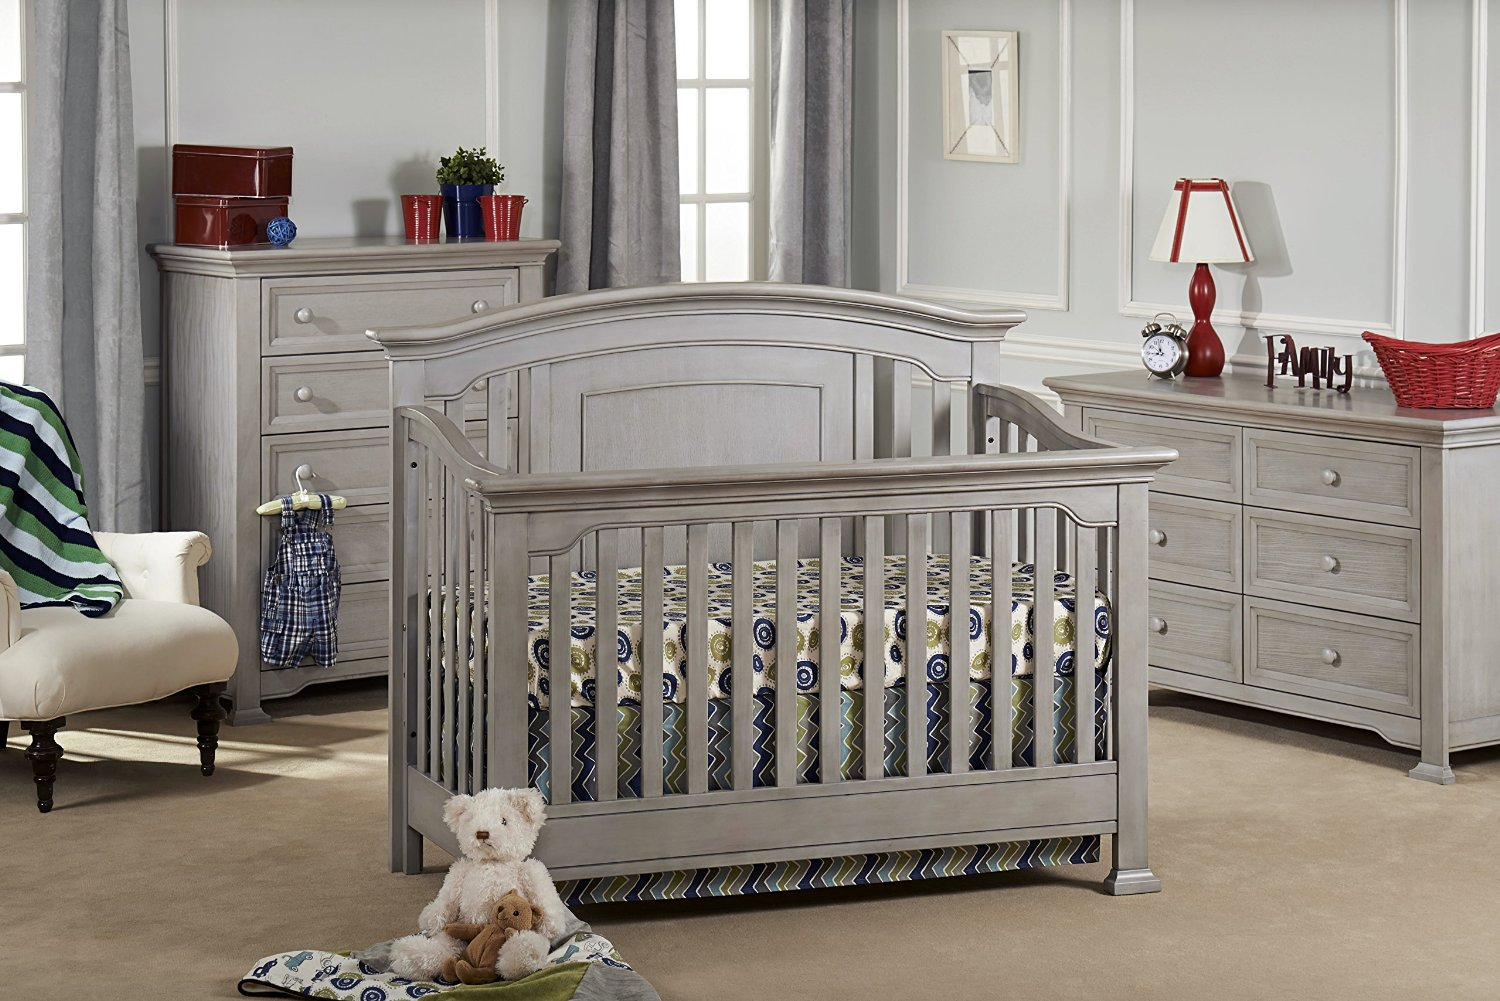 Baby Furniture Stores and Sources | Decoration Designs Guide